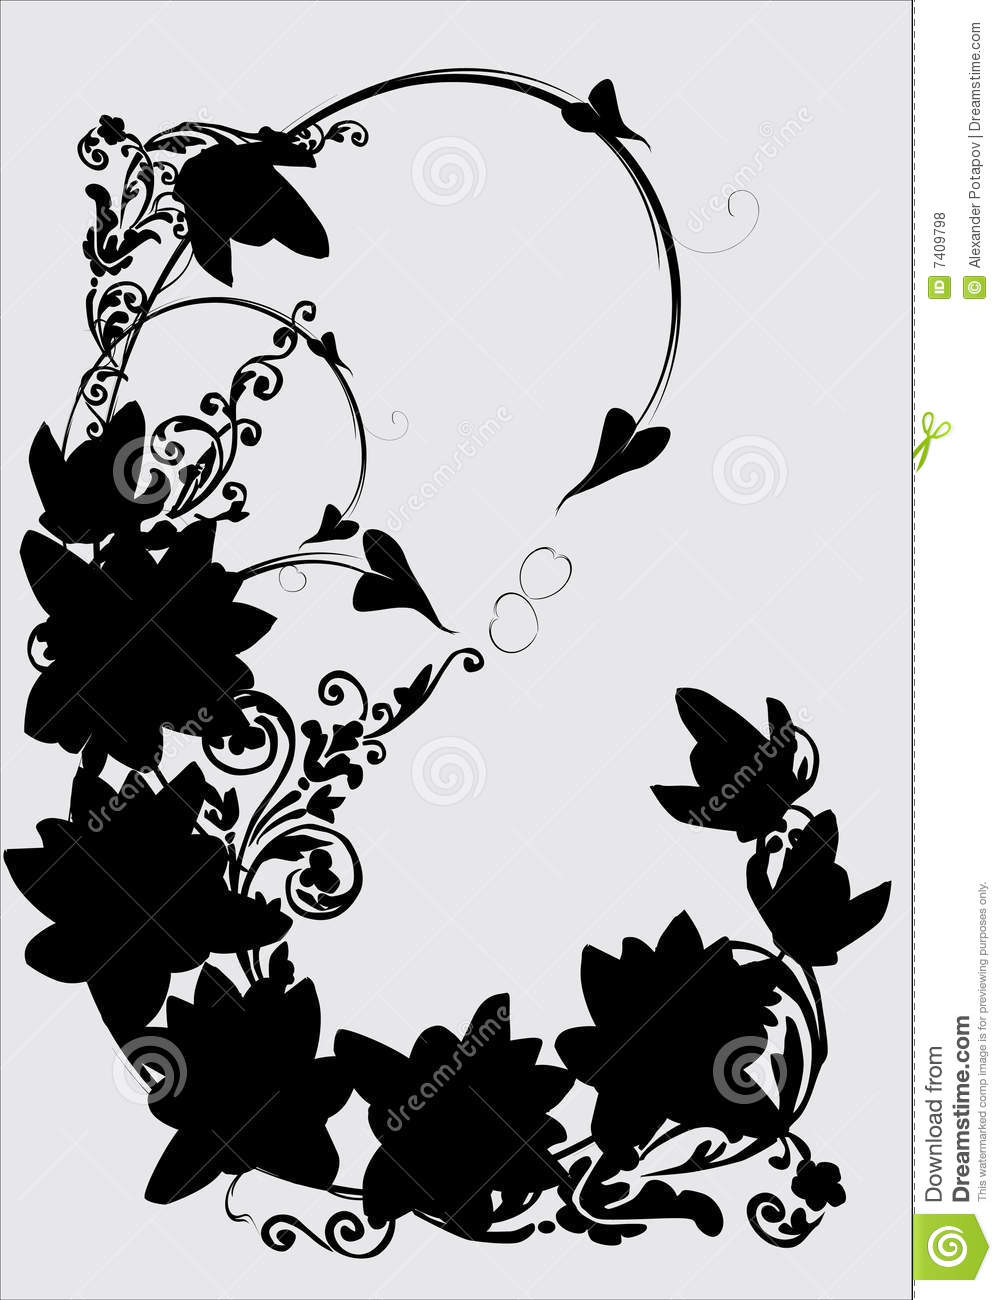 swirl of lily silhouette on gray royalty free stock photos